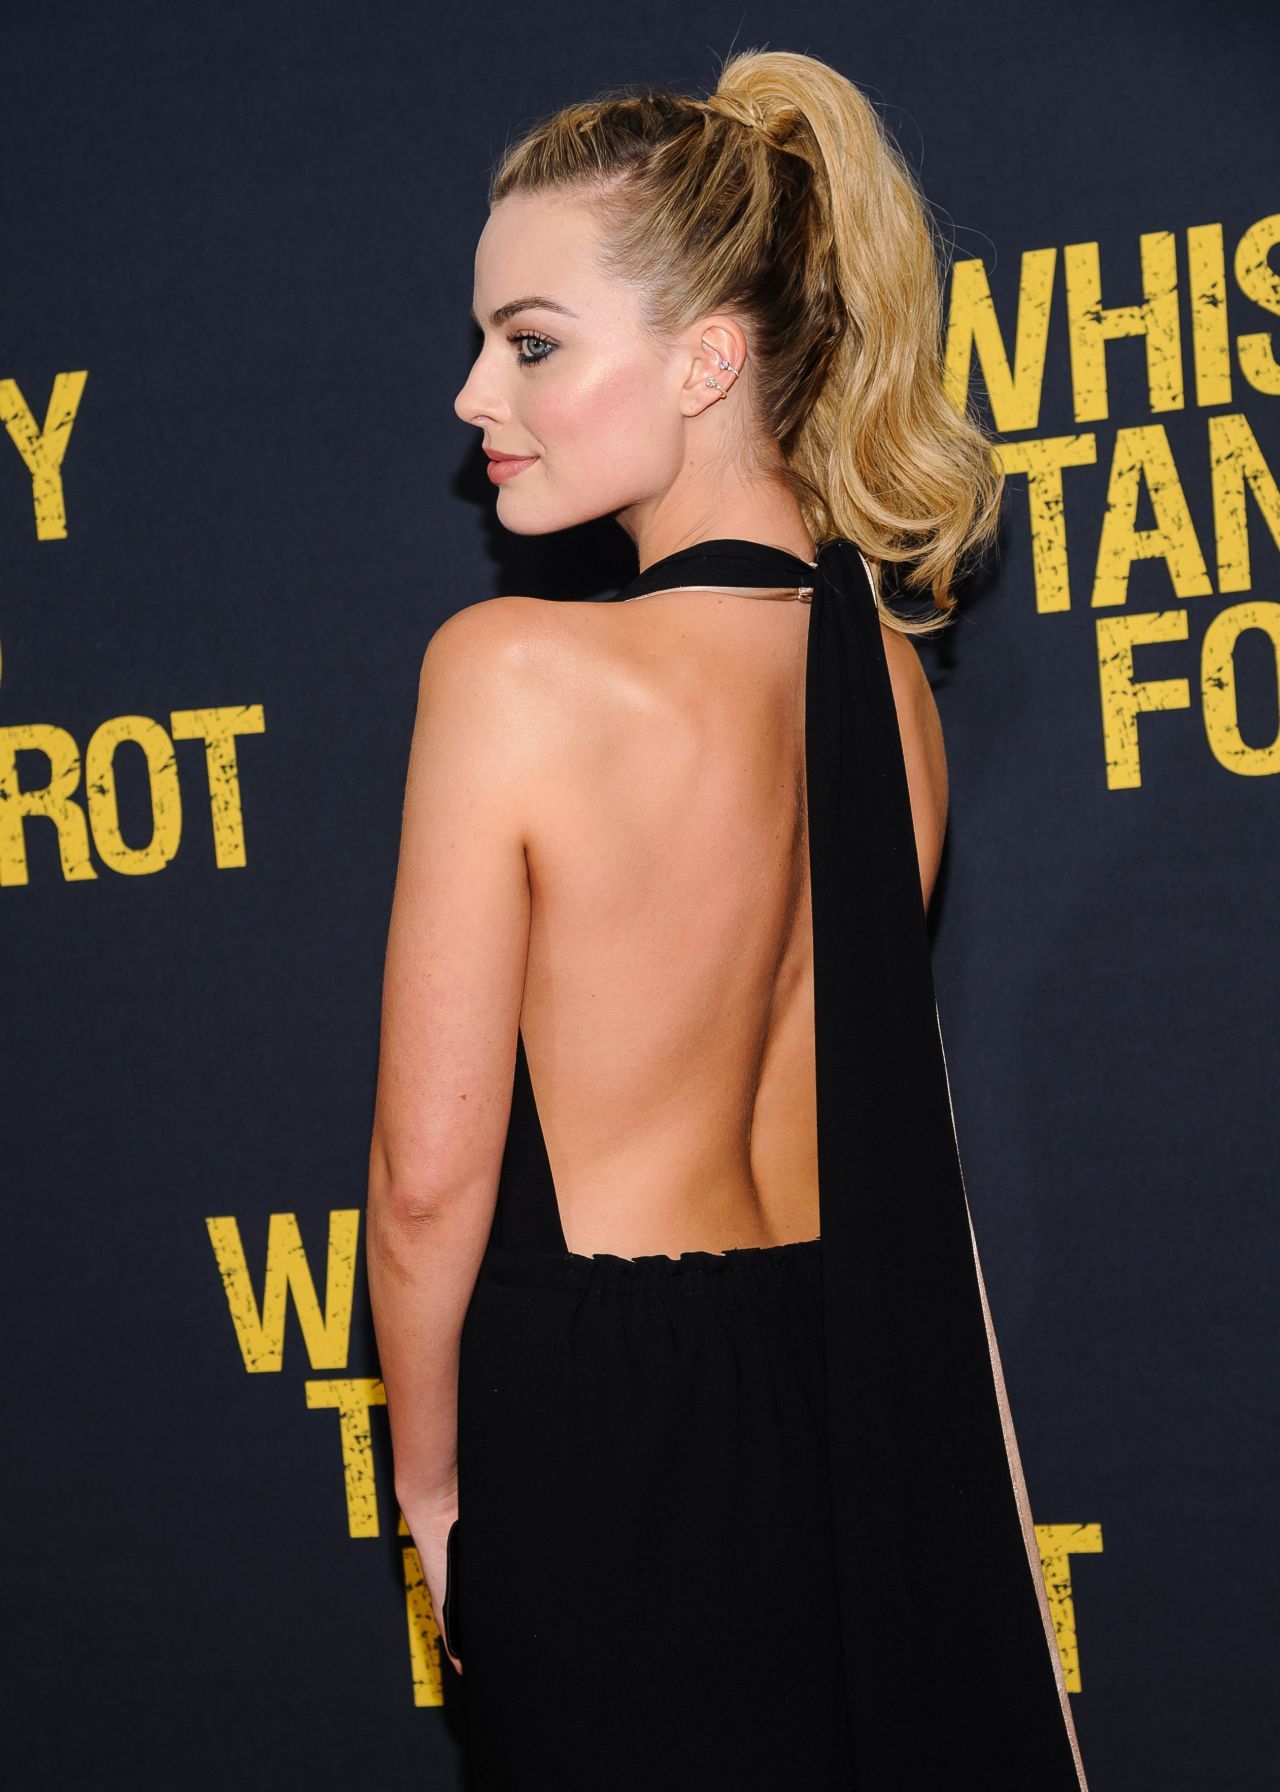 margot-robbie-whiskey-tango-foxtrot-premiere-in-new-york-city-ny-8